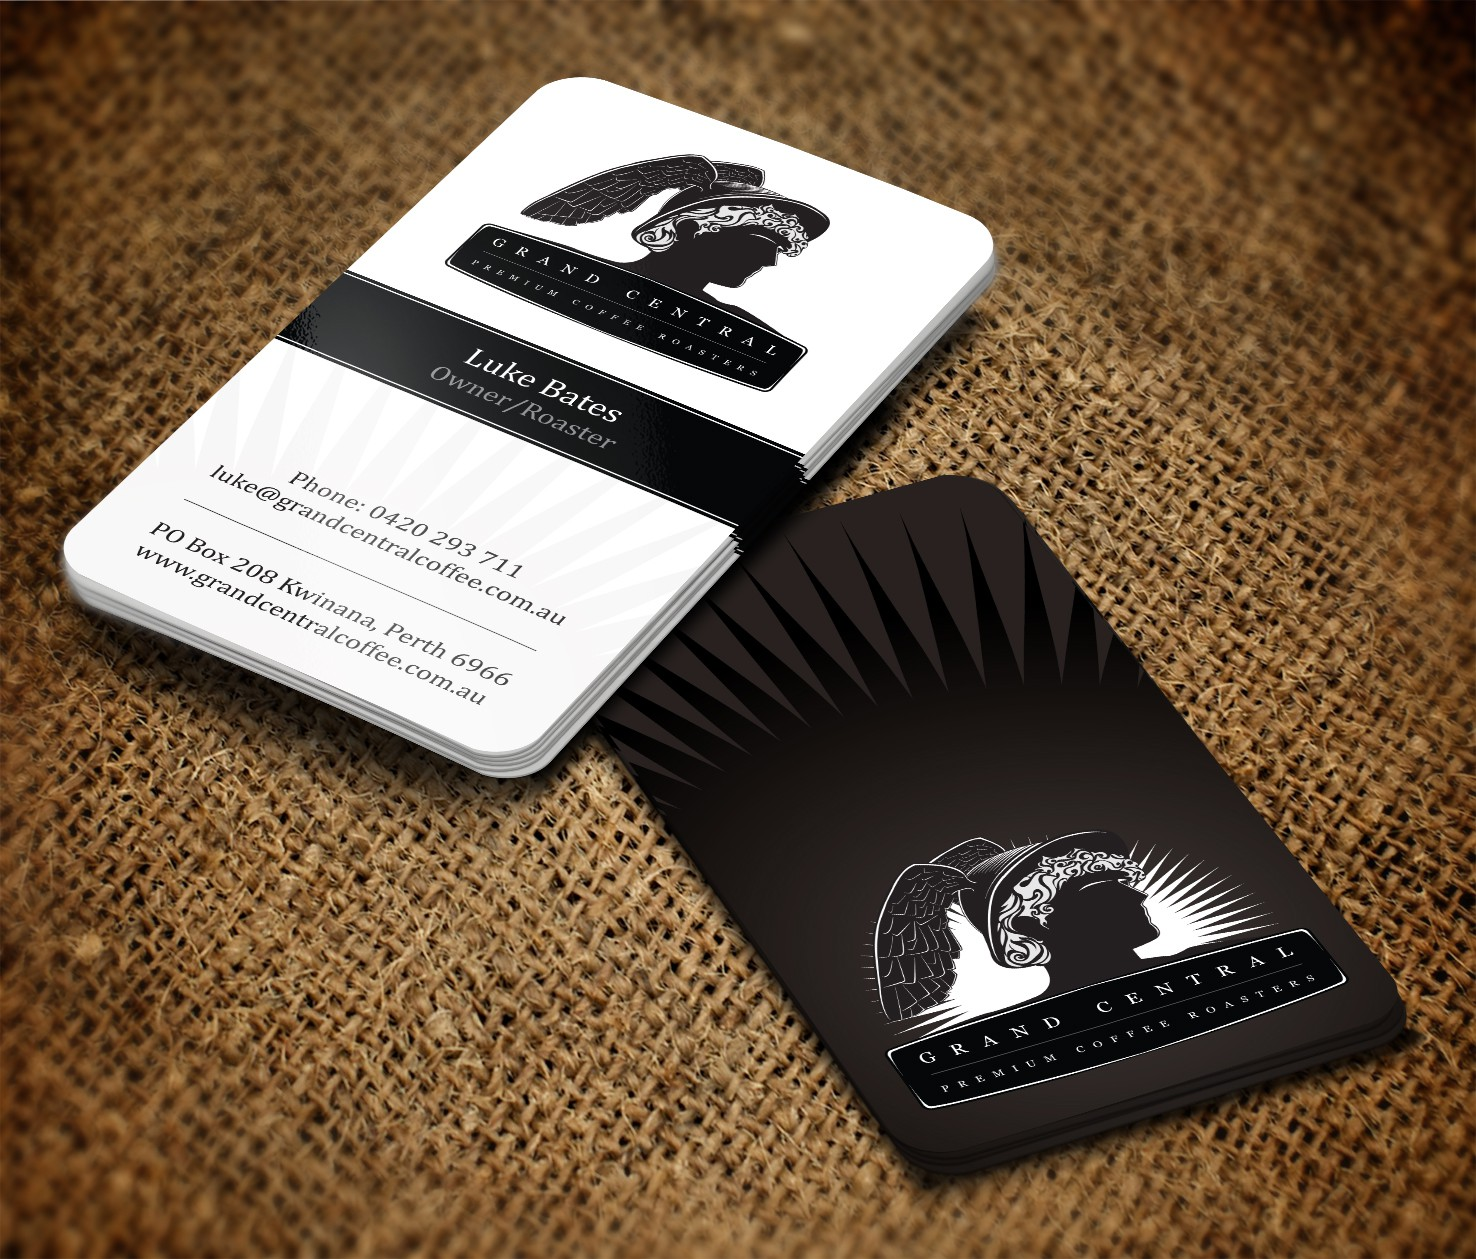 stationery for Grand Central Premium Coffee Roasters